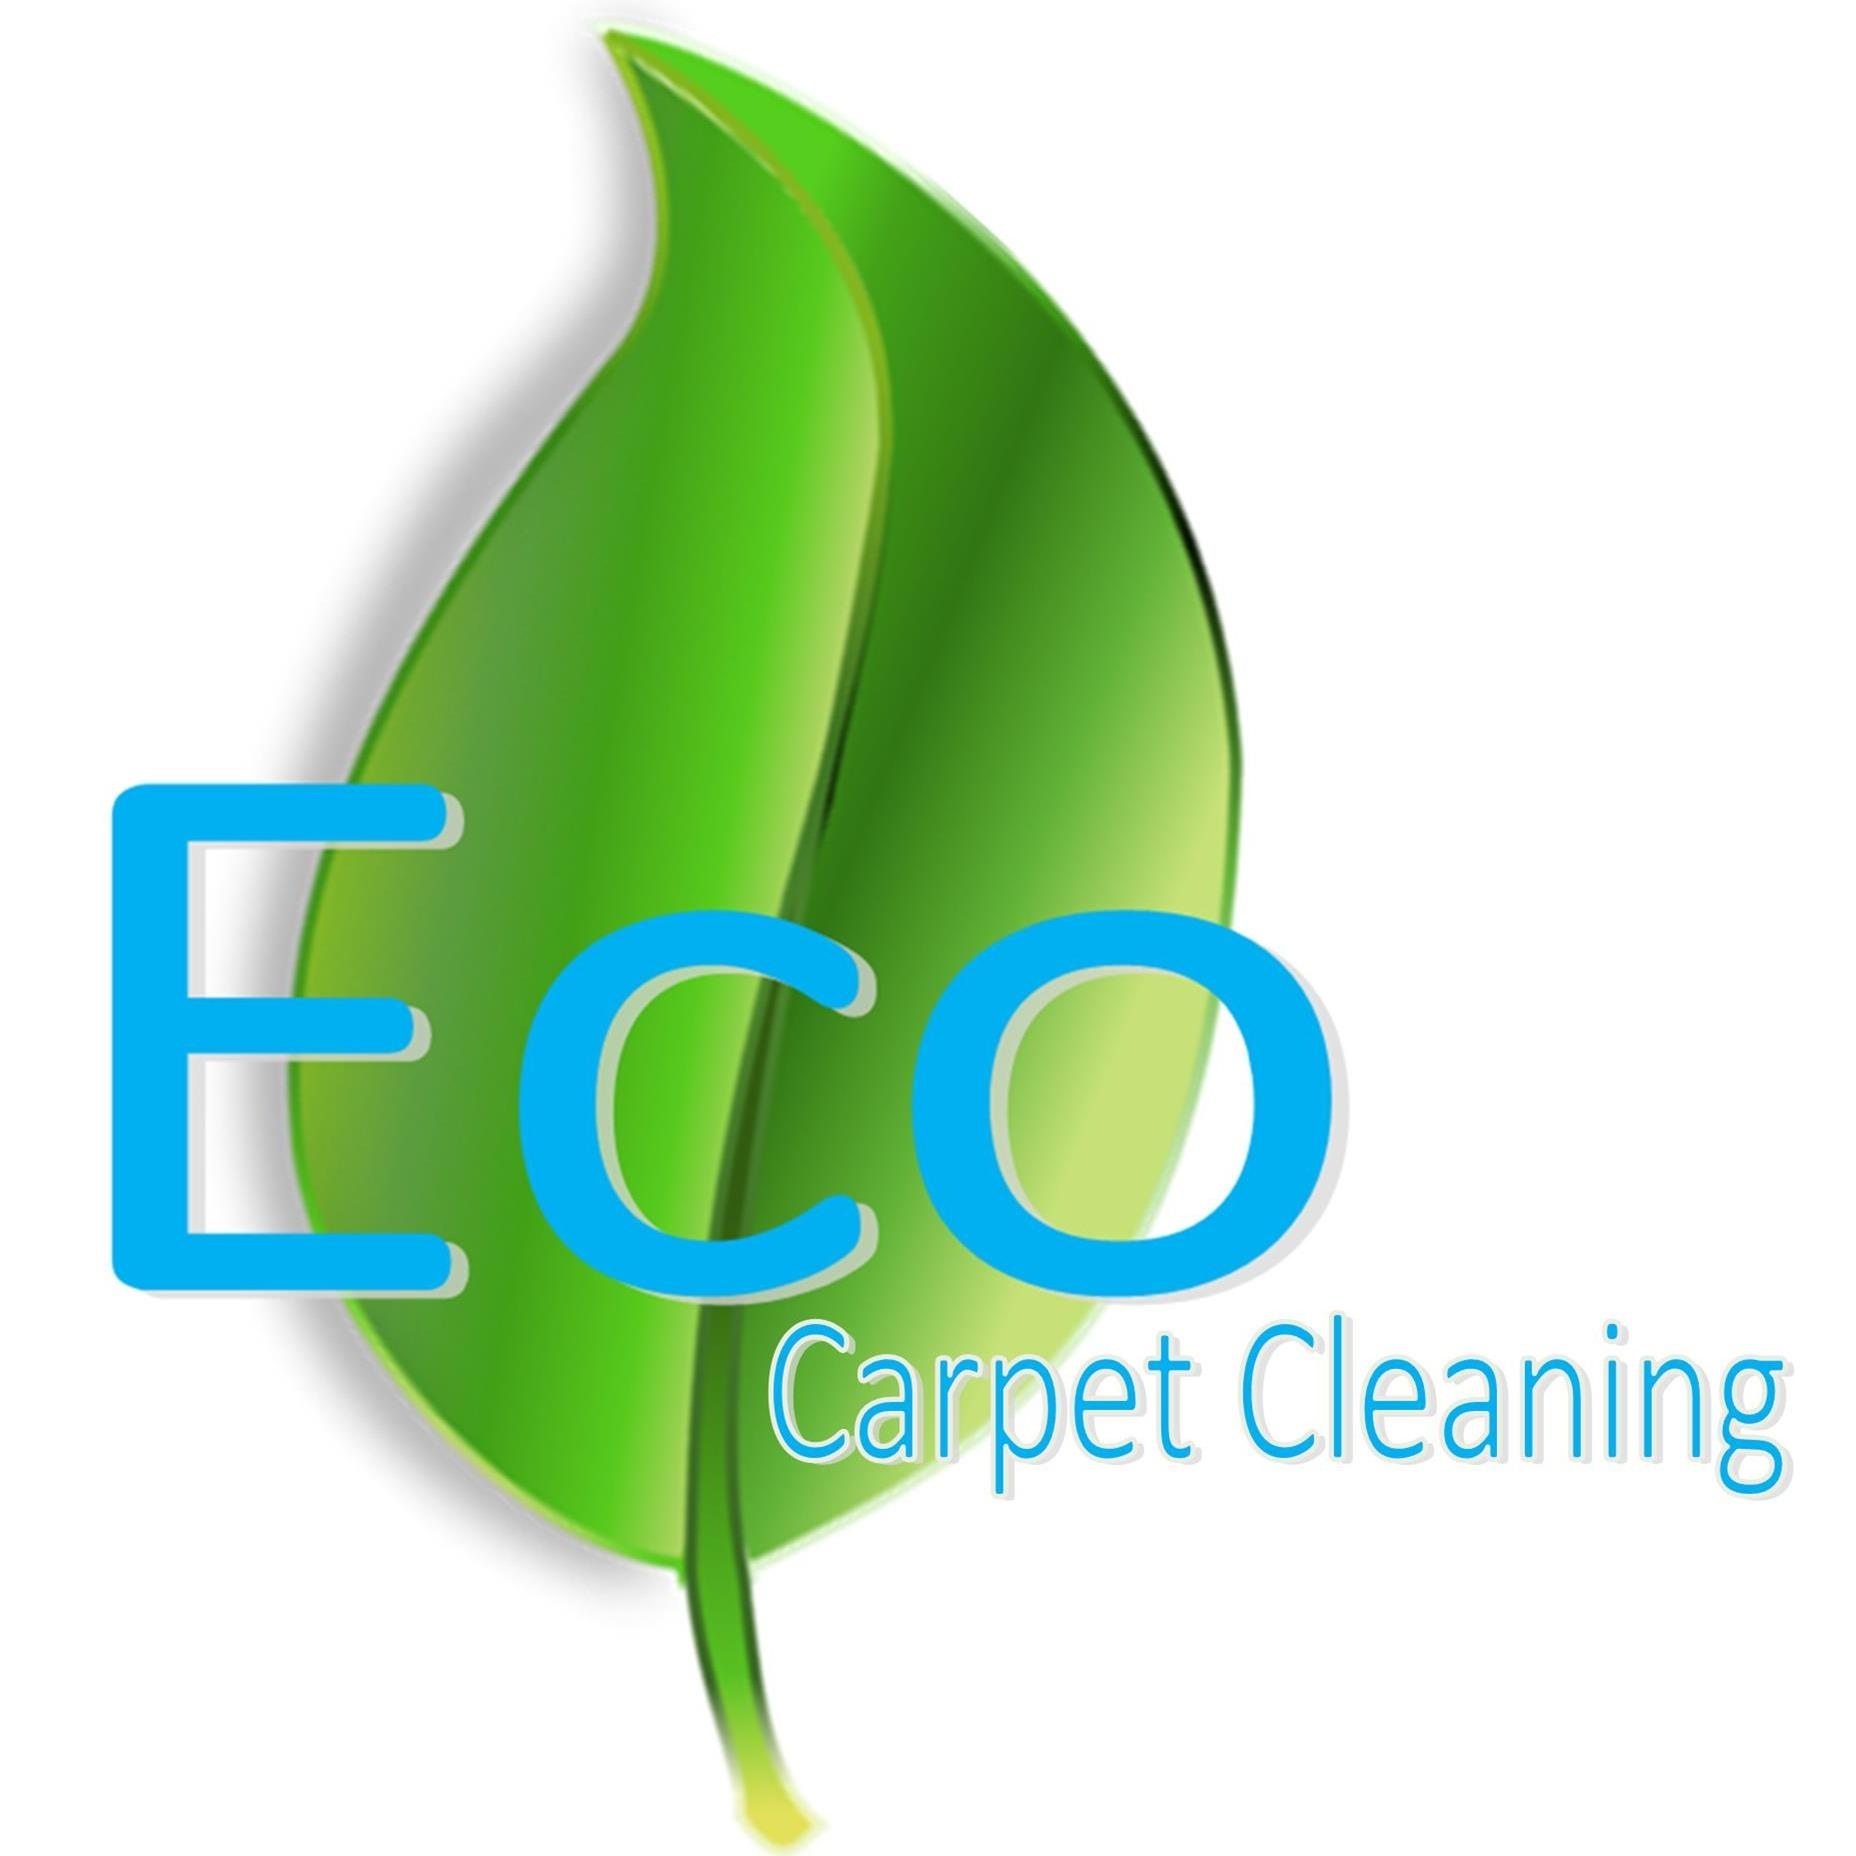 image of the Eco Carpet Cleaning